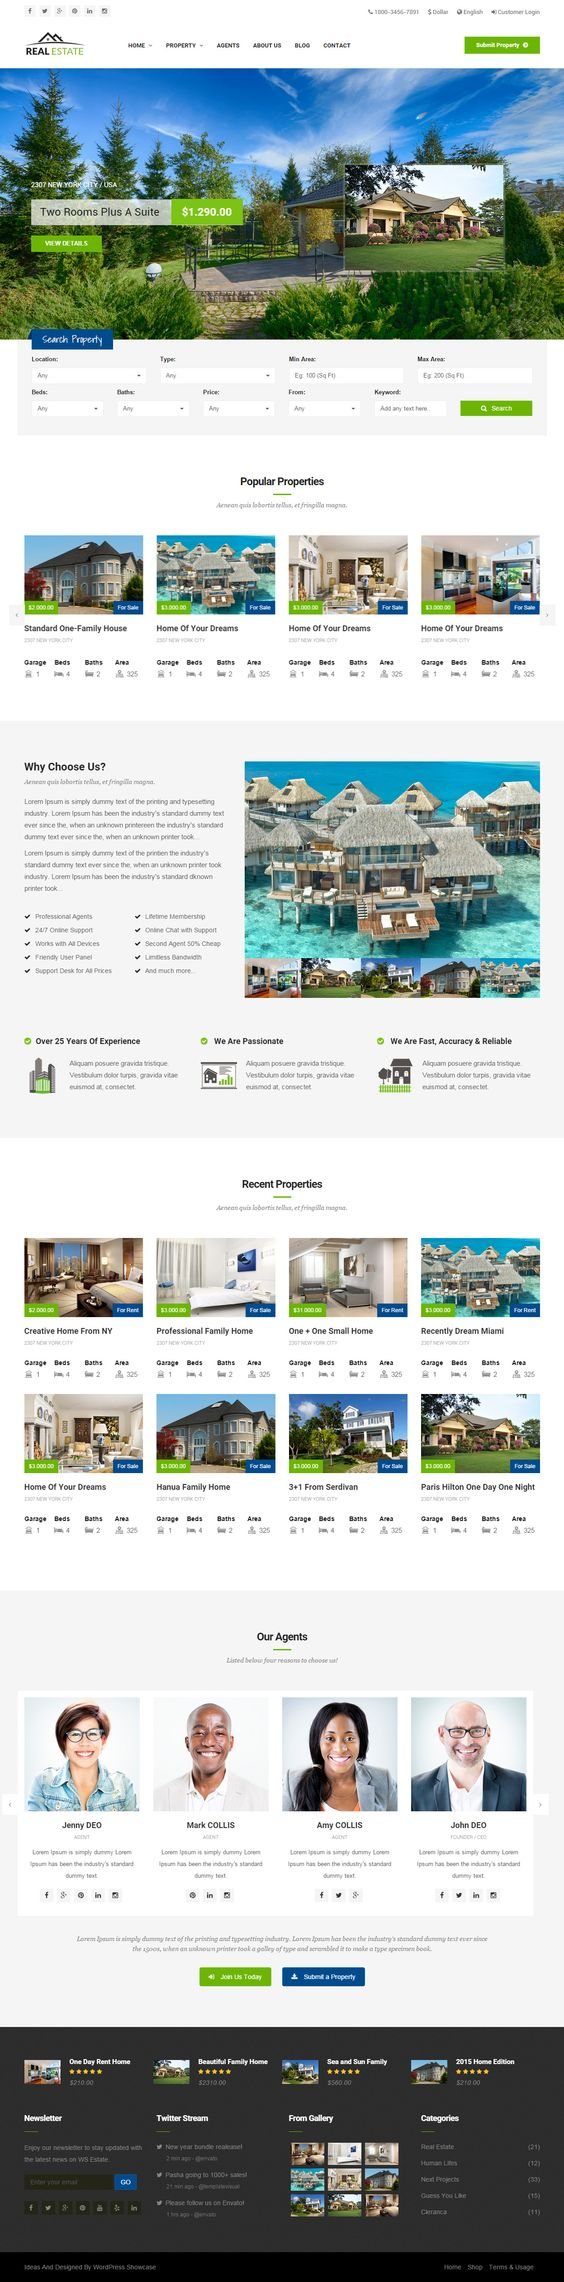 ws estate is premium full responsive retina parallax html ws estate is premium full responsive retina parallax real estate template bootstrap video background google map test demo at themeforest